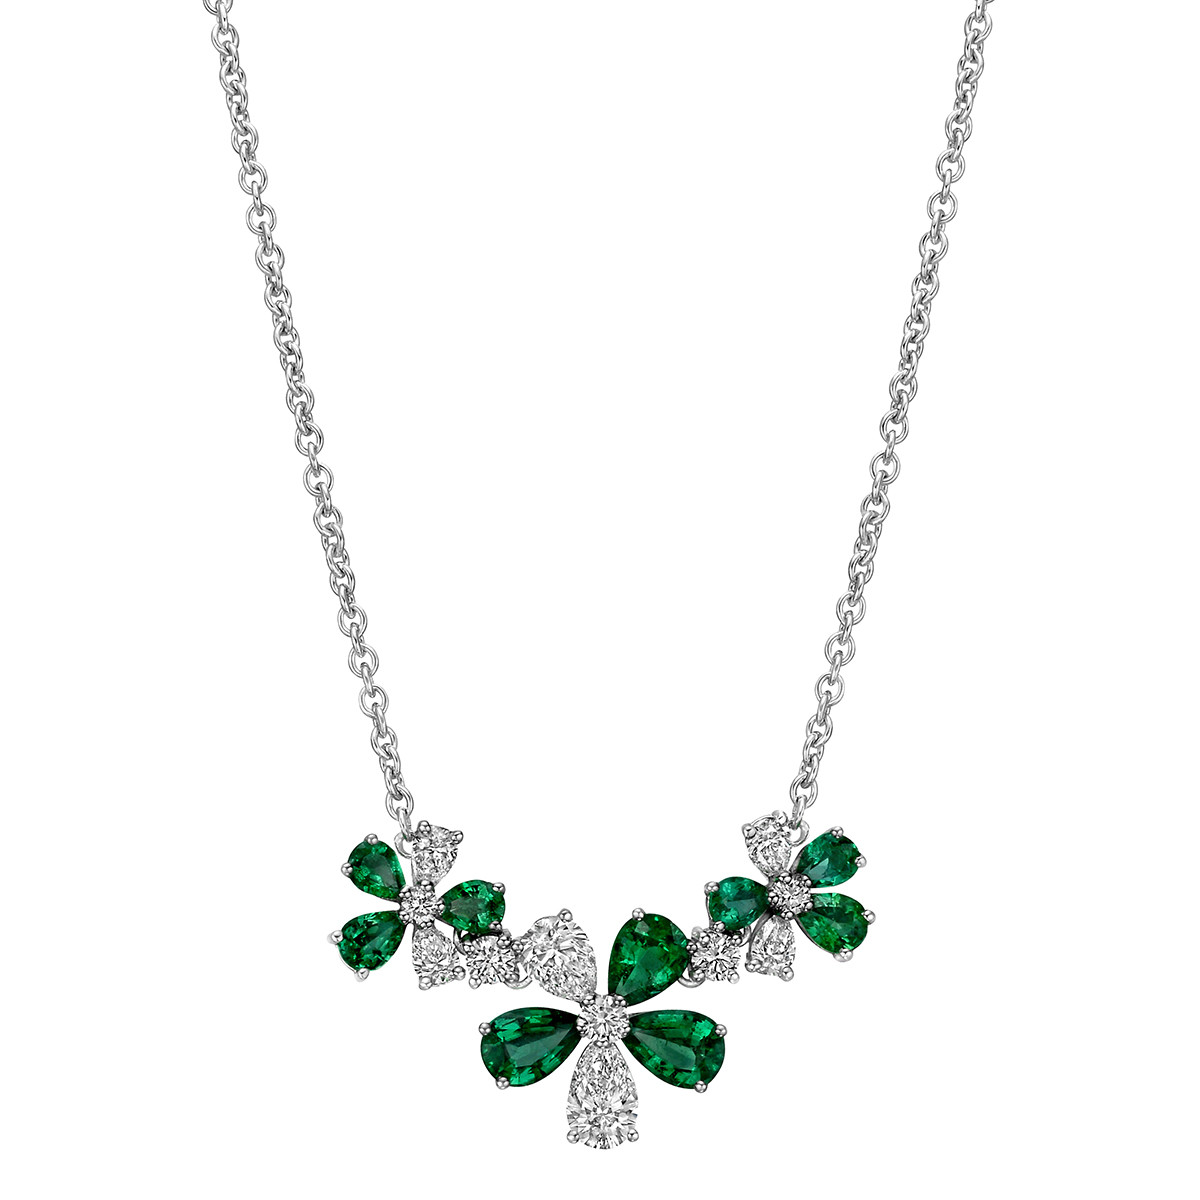 Emerald & Diamond 3-Flower Pendant